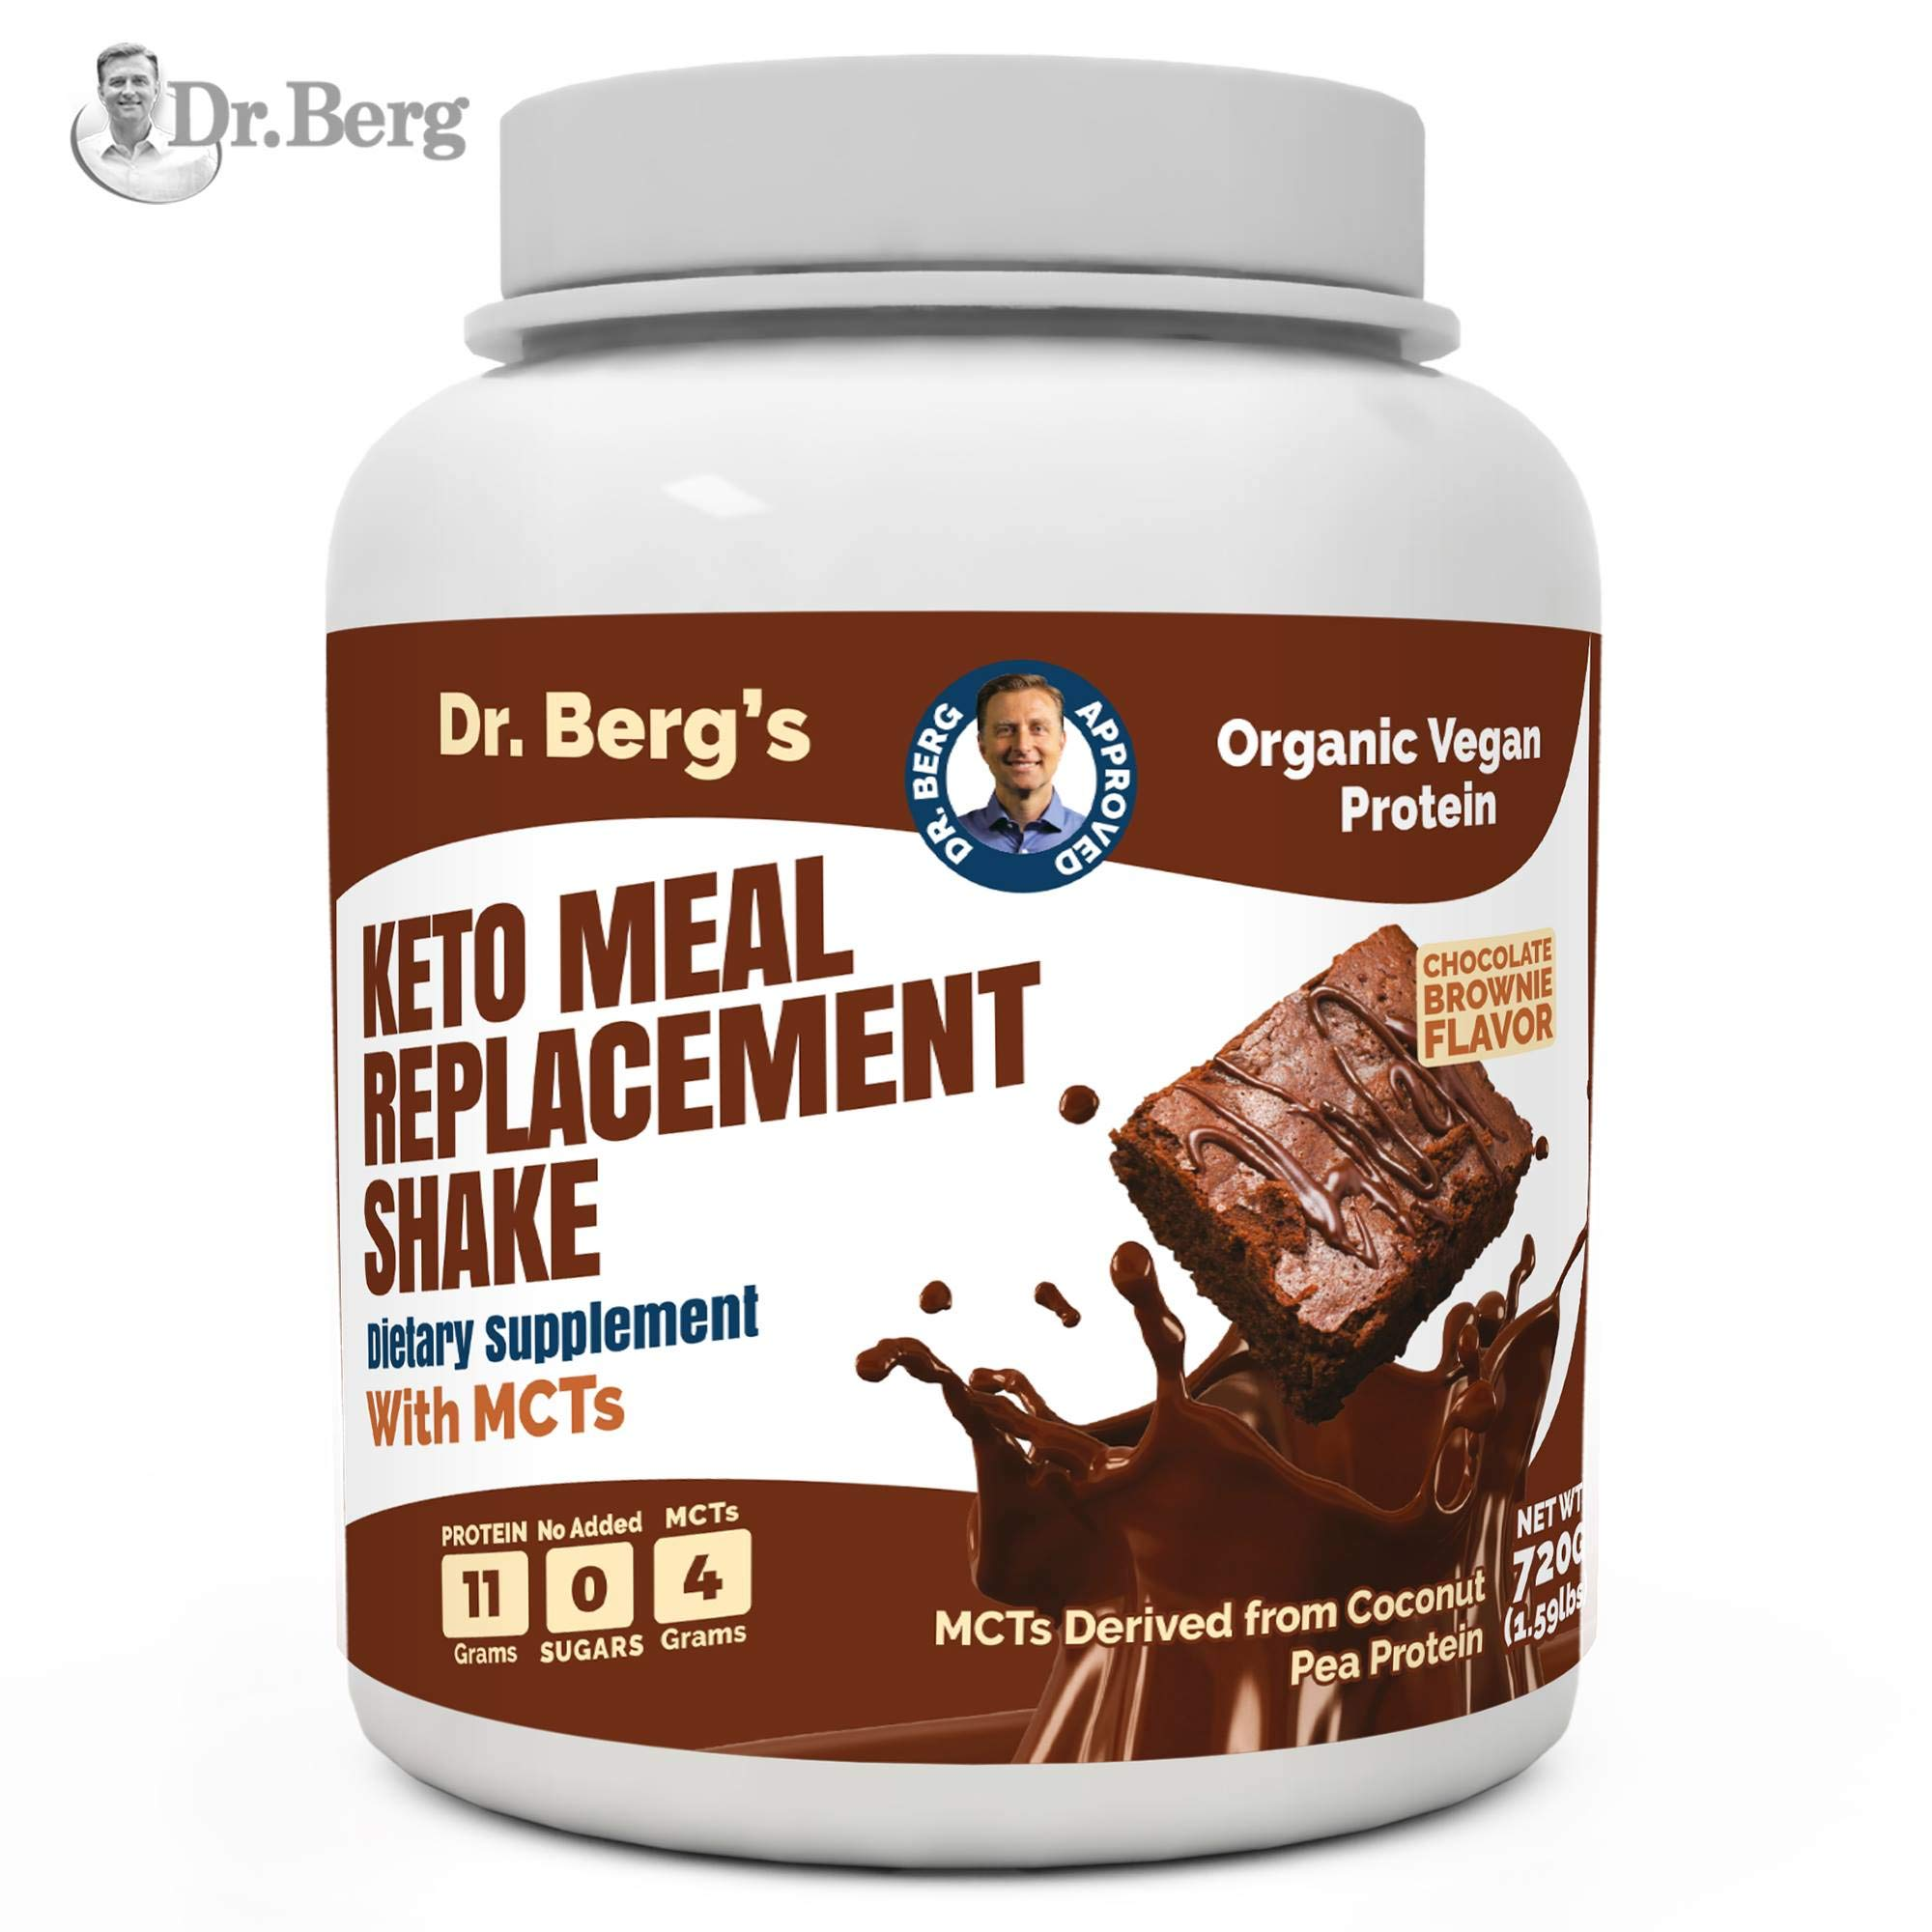 Dr. Berg's Meal Replacement Shake with MCTs & BCAAs, Plant Based Organic Protein, Zero Added Sugars - Delicious Creamy Chocolate Brownie Flavor, 11 Grams of Protein, 4 Grams of MCT, 1.55 Pounds by Dr. Berg's Nutritionals